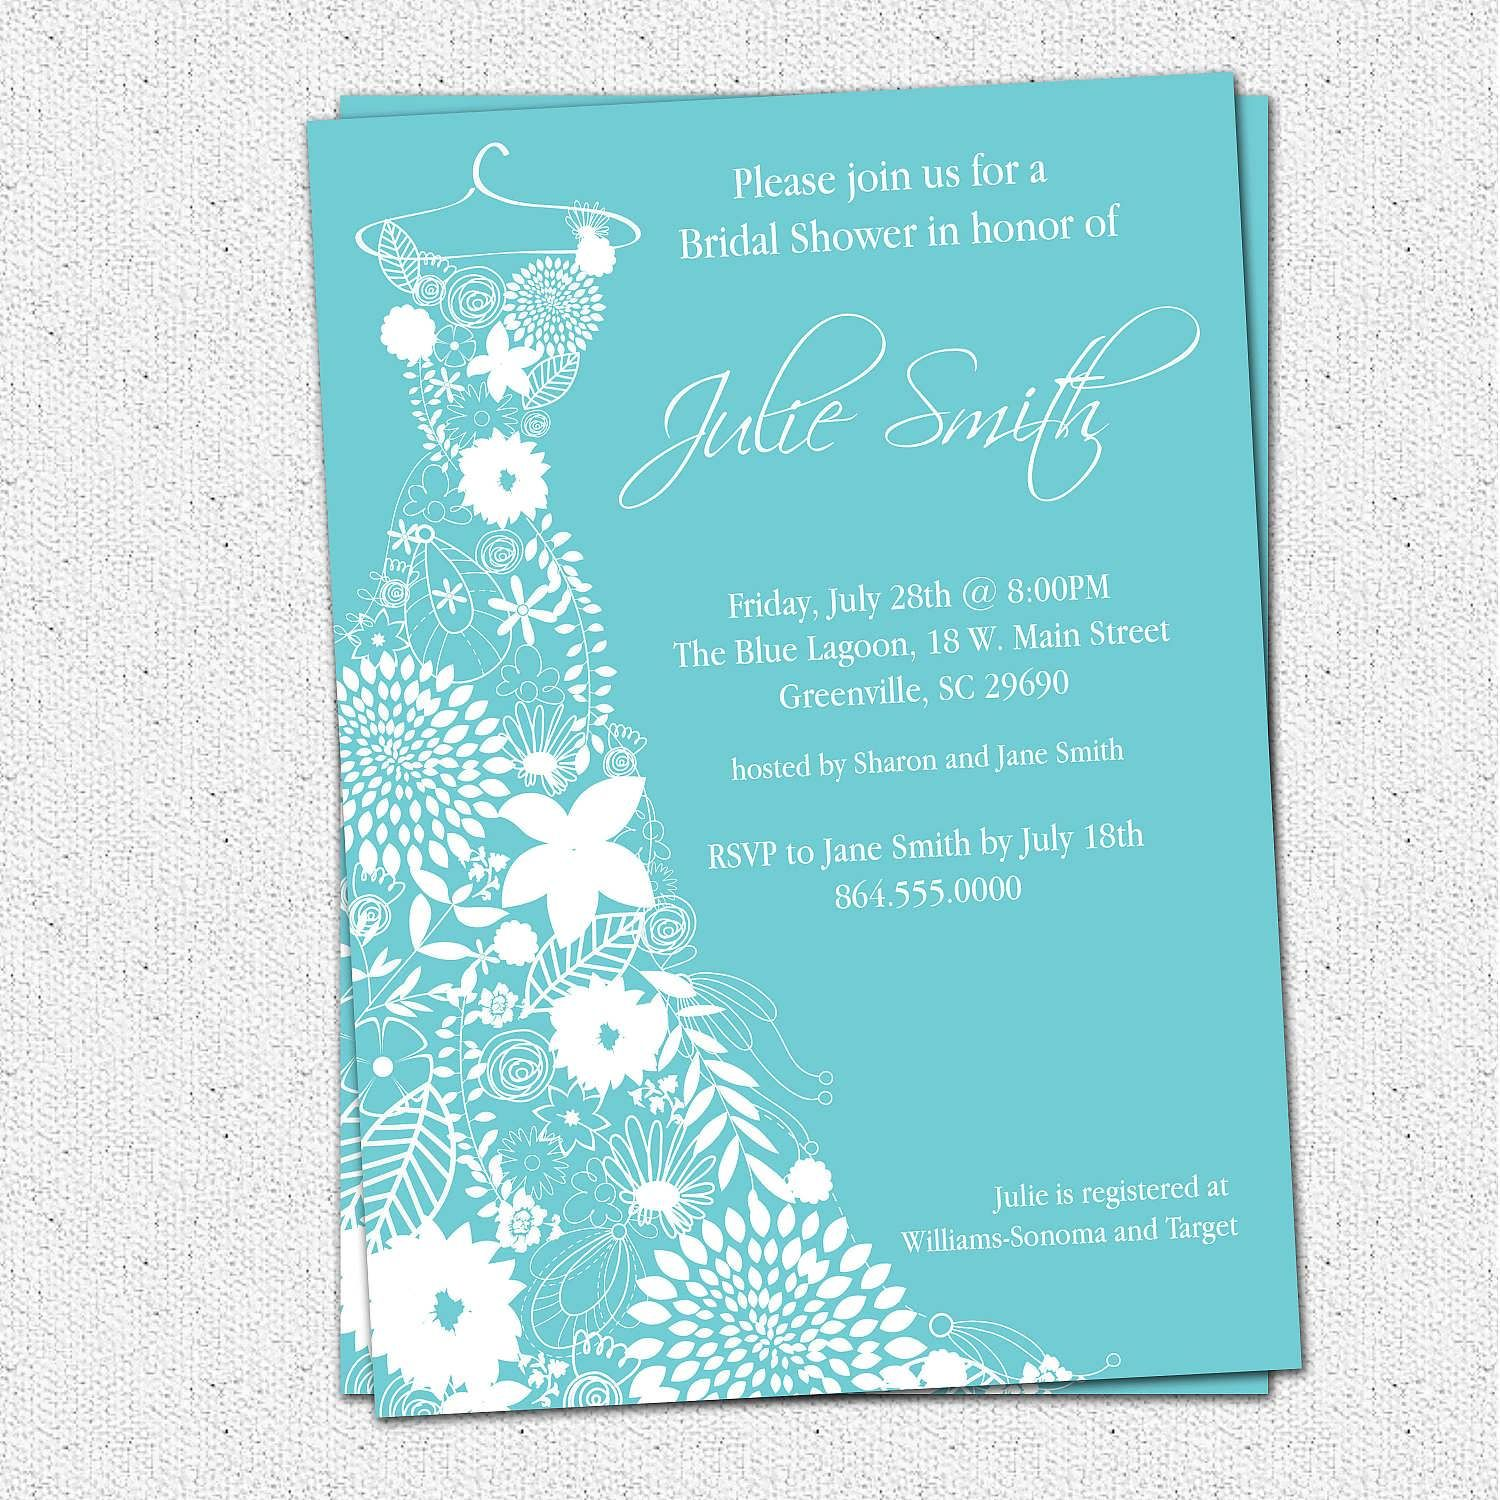 Bridal Shower Invitation Templates Microsoft Word #bridal #shower # Invitation #templates #word  Free Bridal Shower Invitation Templates For Word